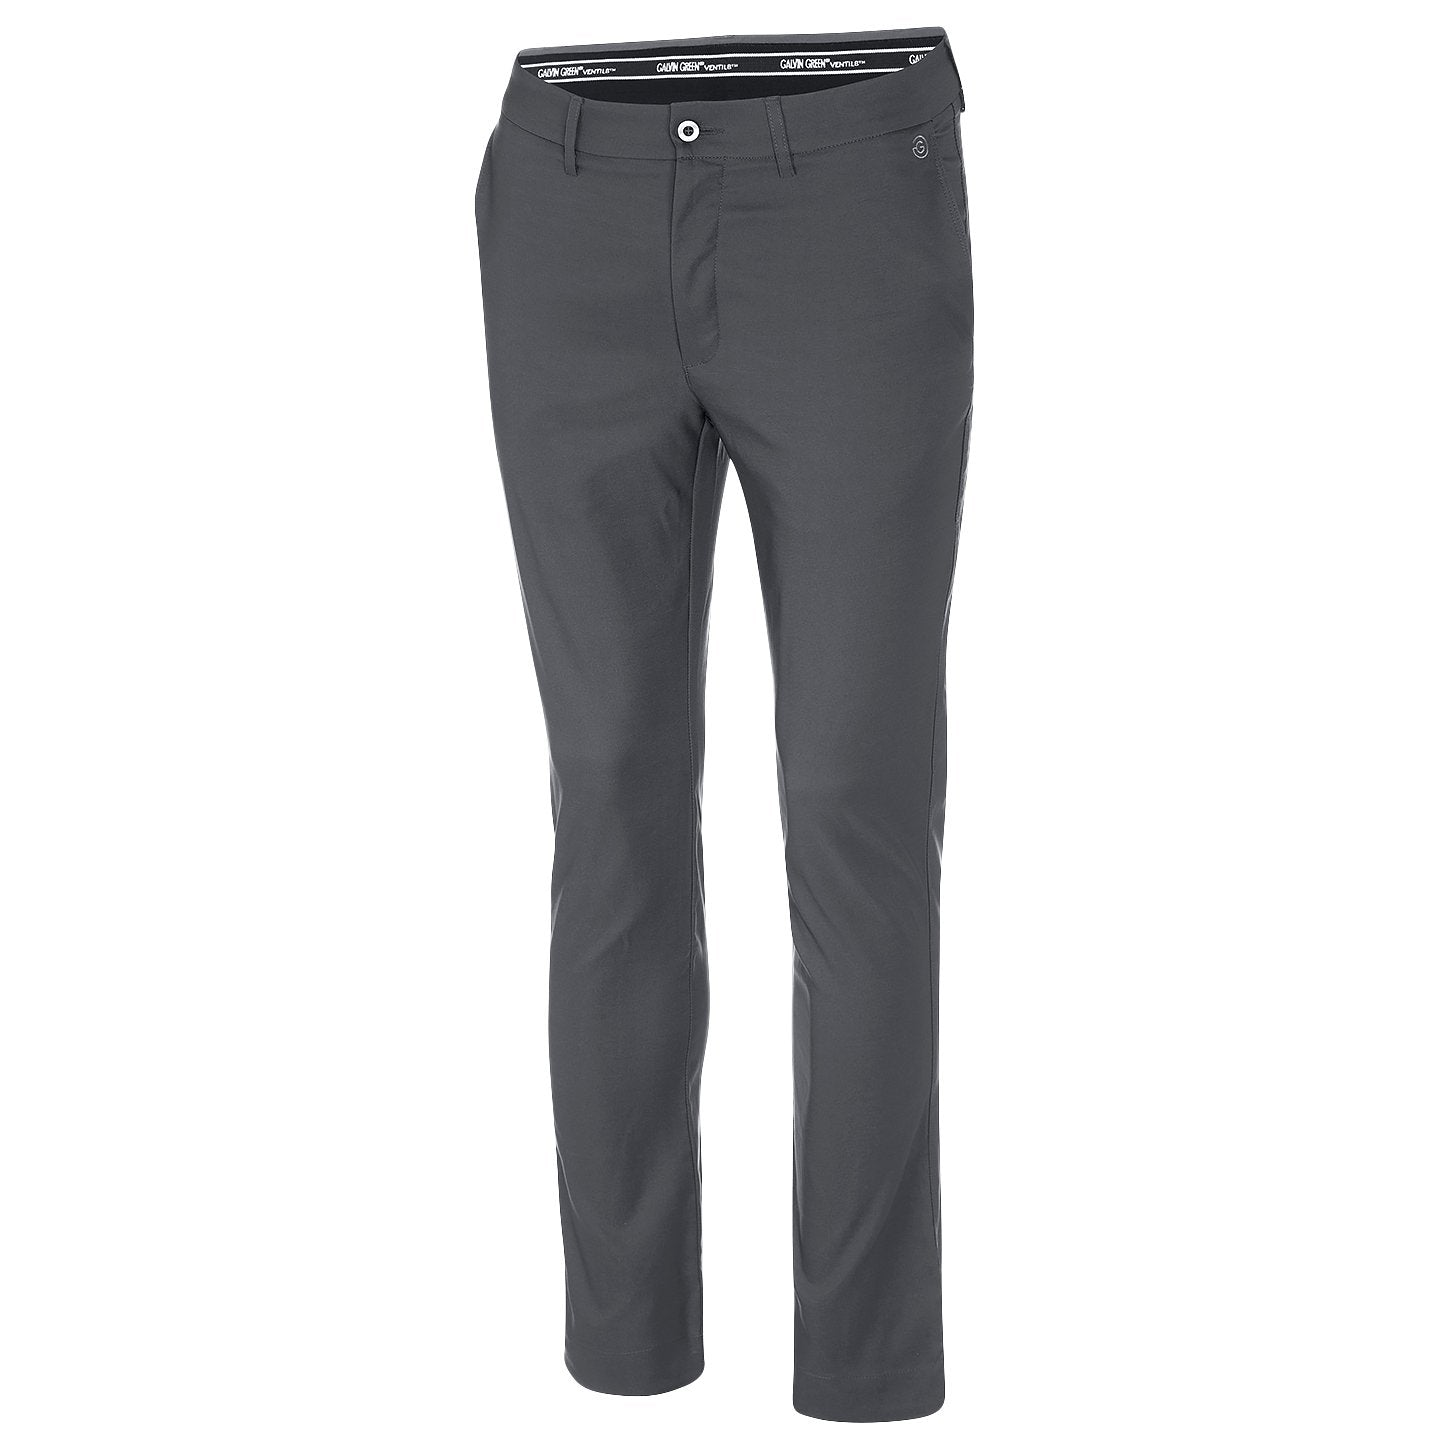 Galvin Green Noah Ventil8+ Golf Trousers in Iron Grey